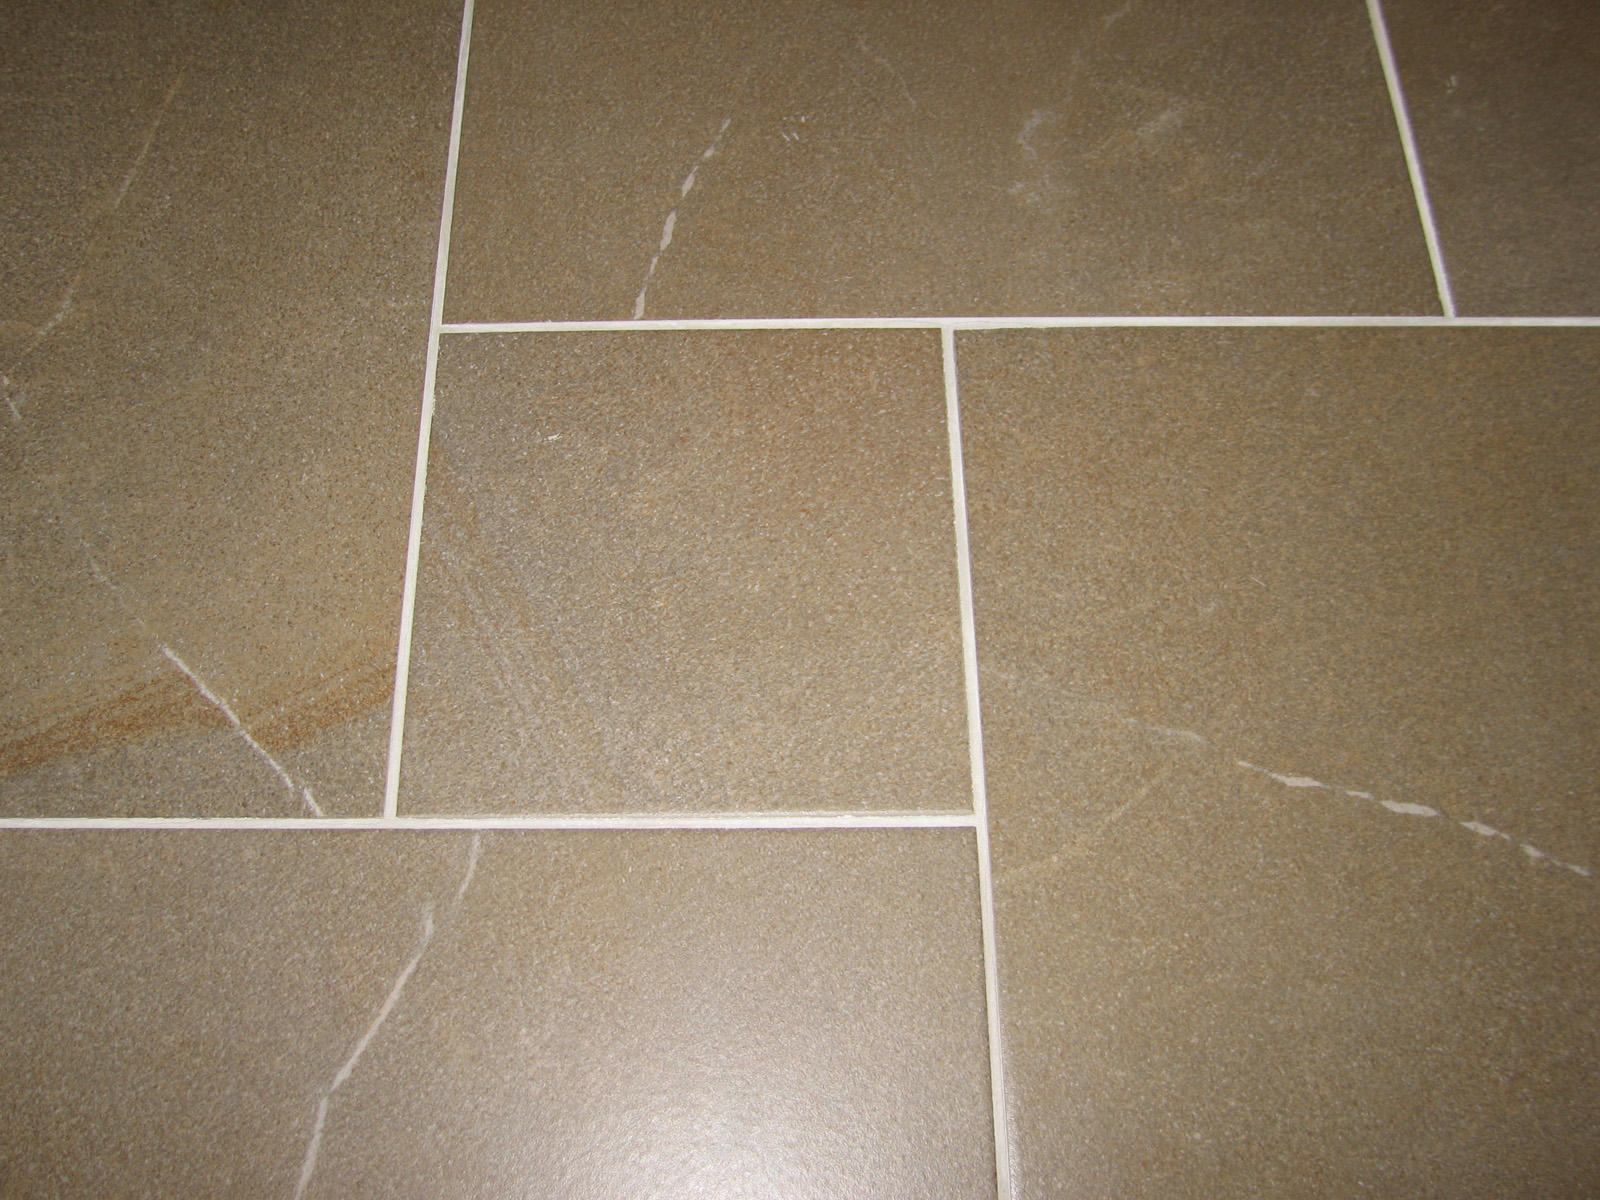 Umbria floor tiles image collections tile flooring design ideas umbria floor tiles images home flooring design umbria floor tiles choice image tile flooring design ideas dailygadgetfo Choice Image